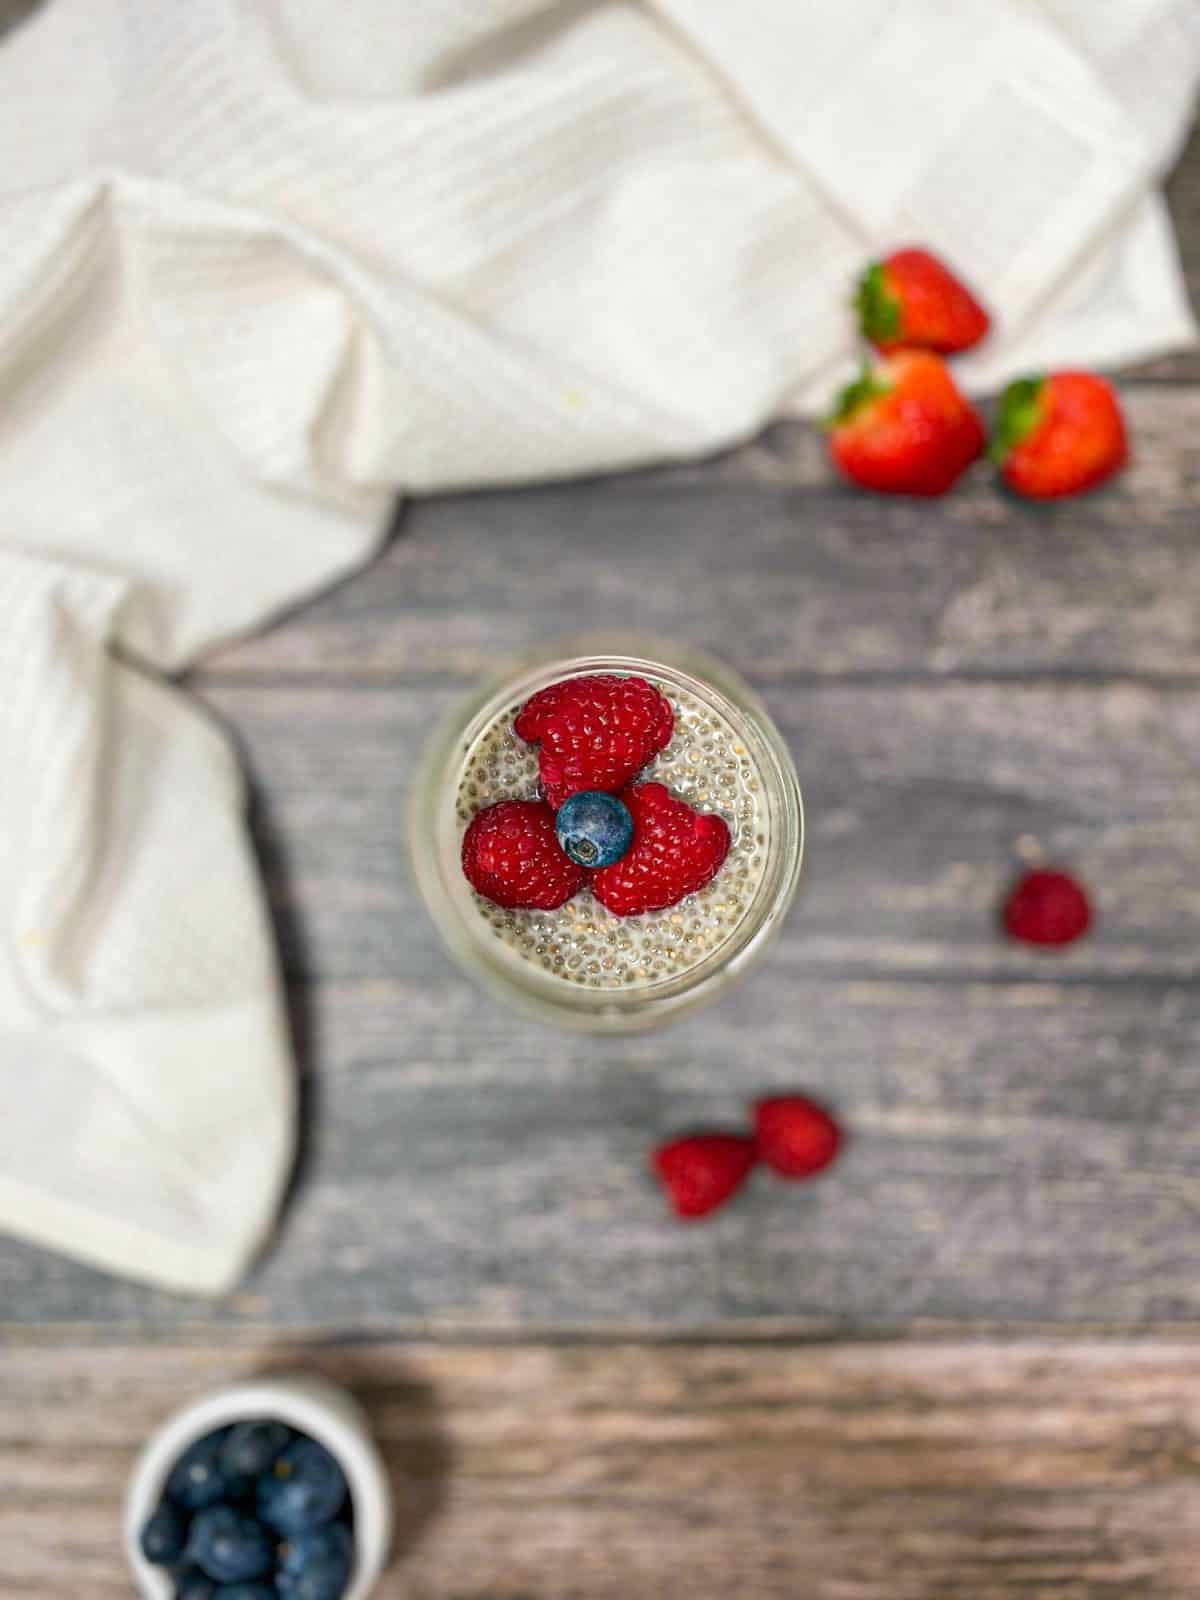 overhead view of glass jar with chia pudding inside and berries on top